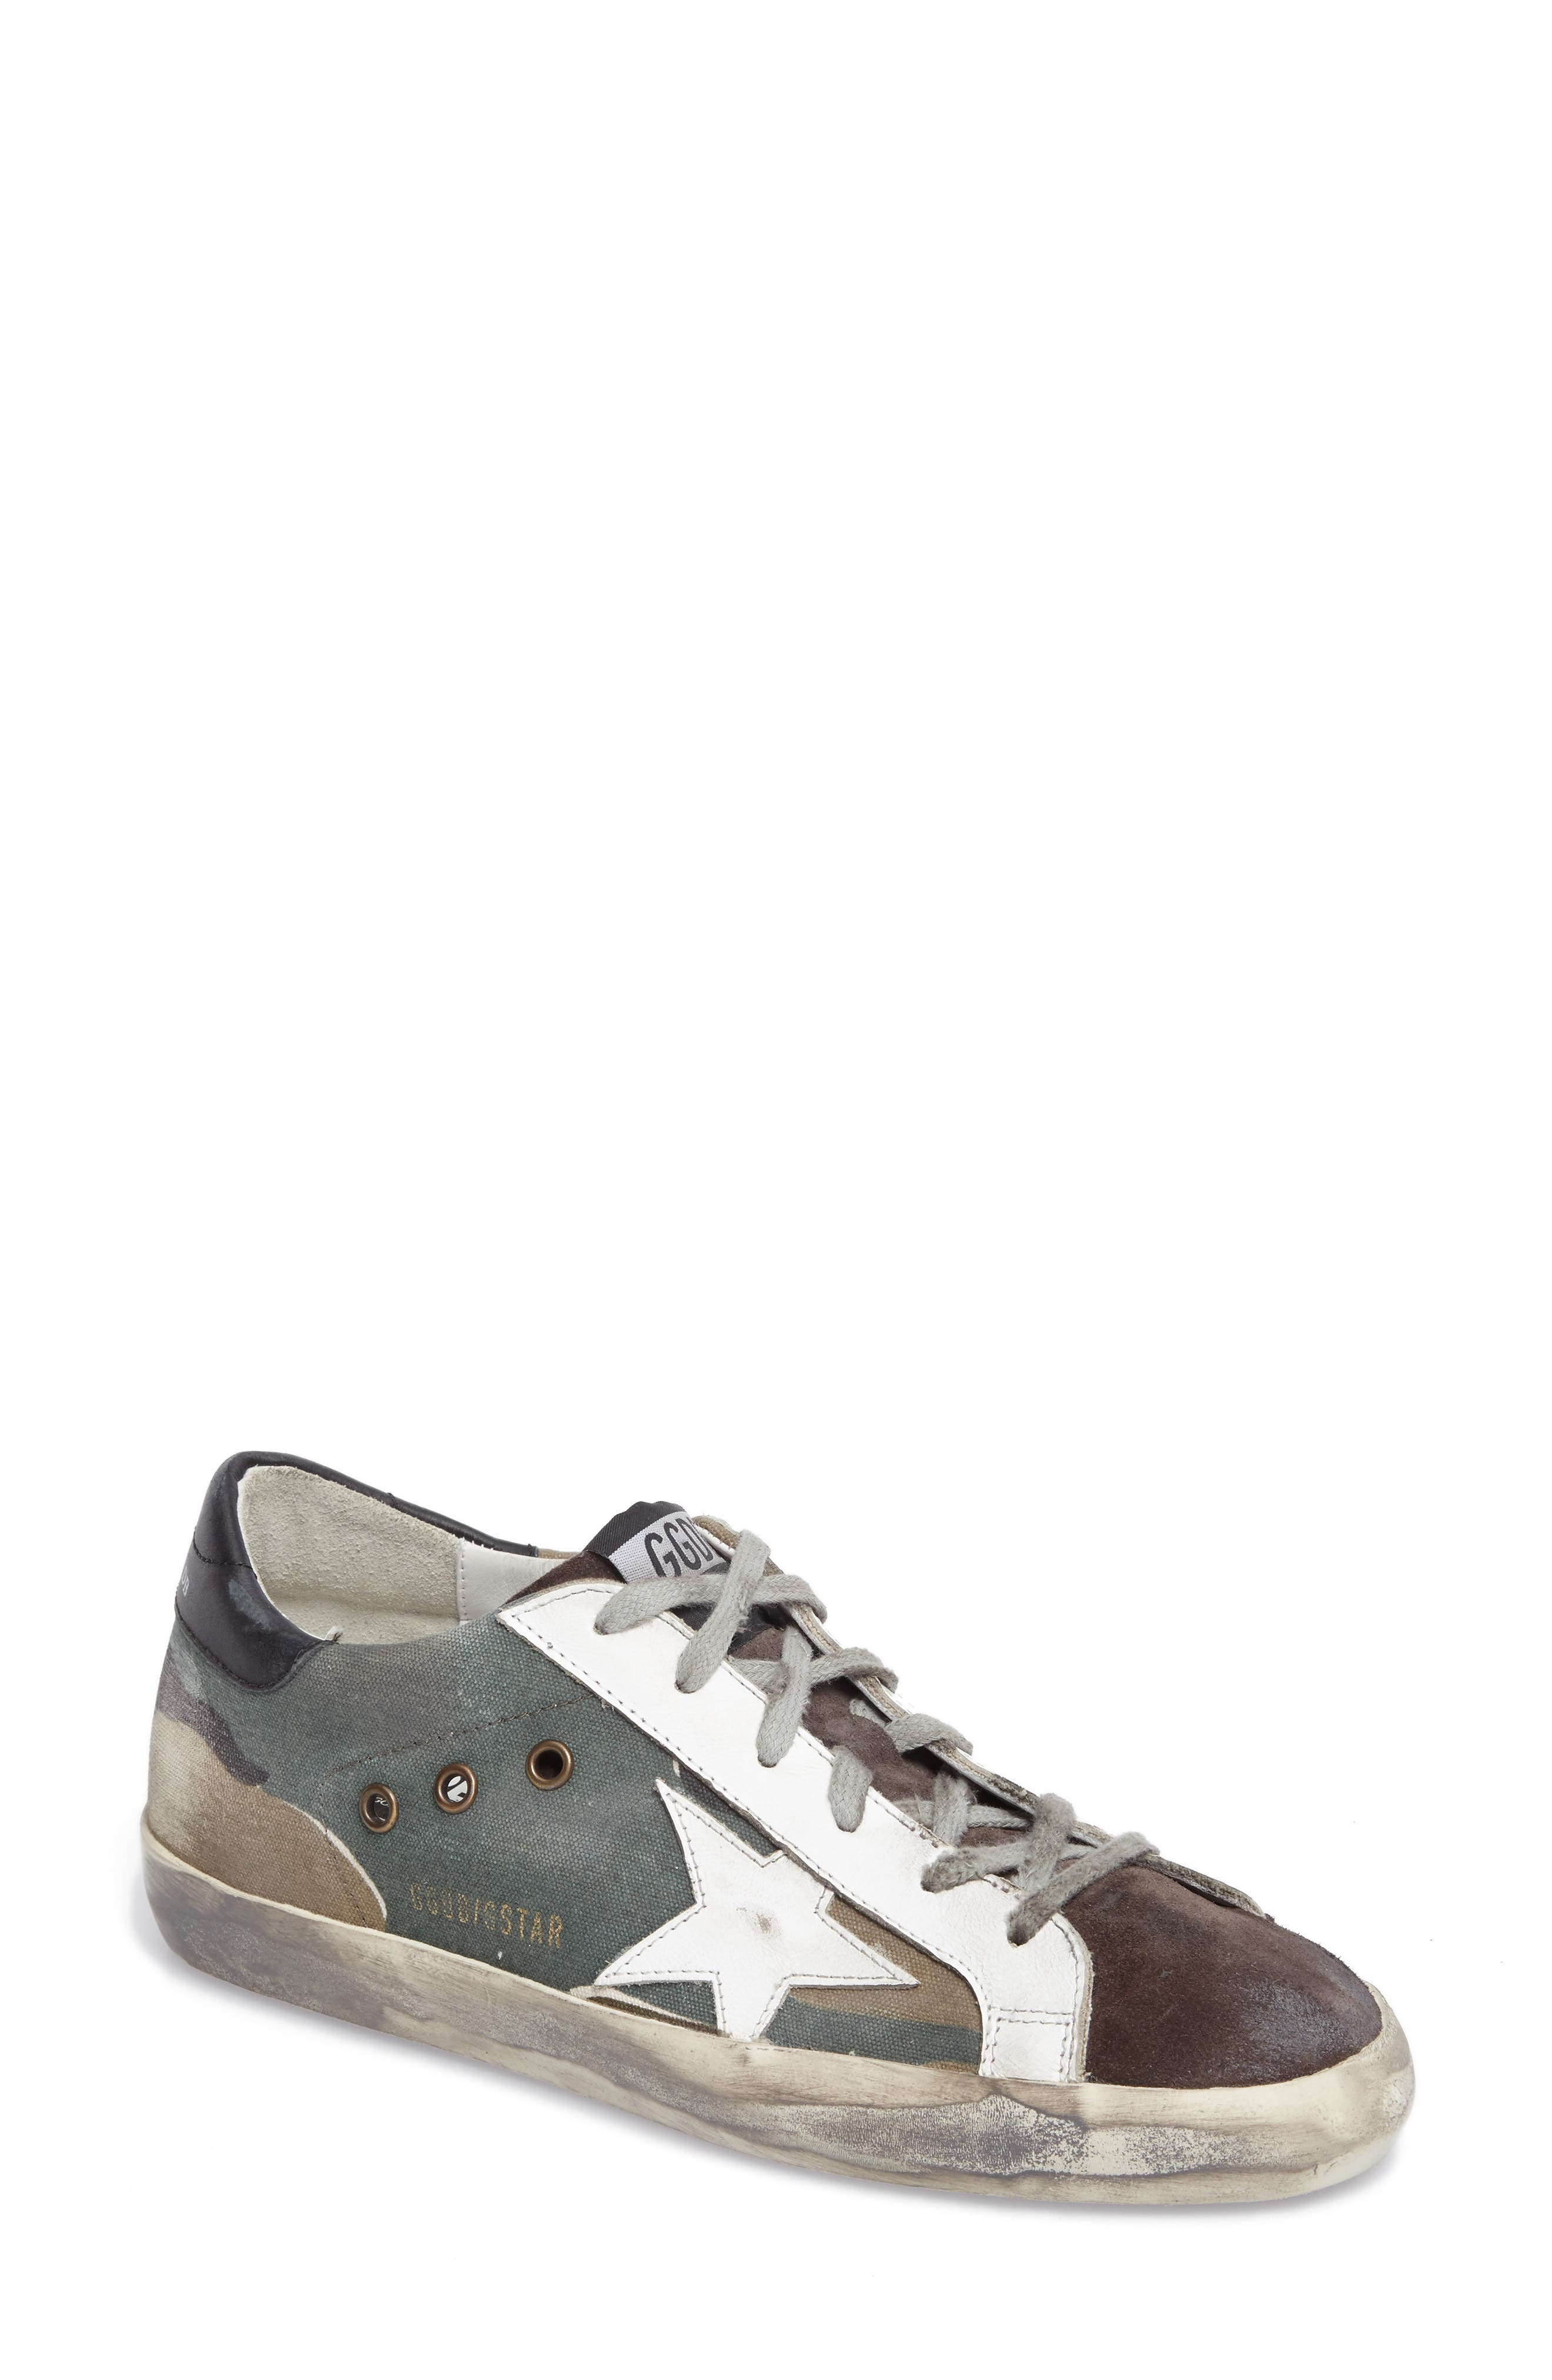 GOLDEN GOOSE Superstar Low Top Sneaker, Main, color, 020